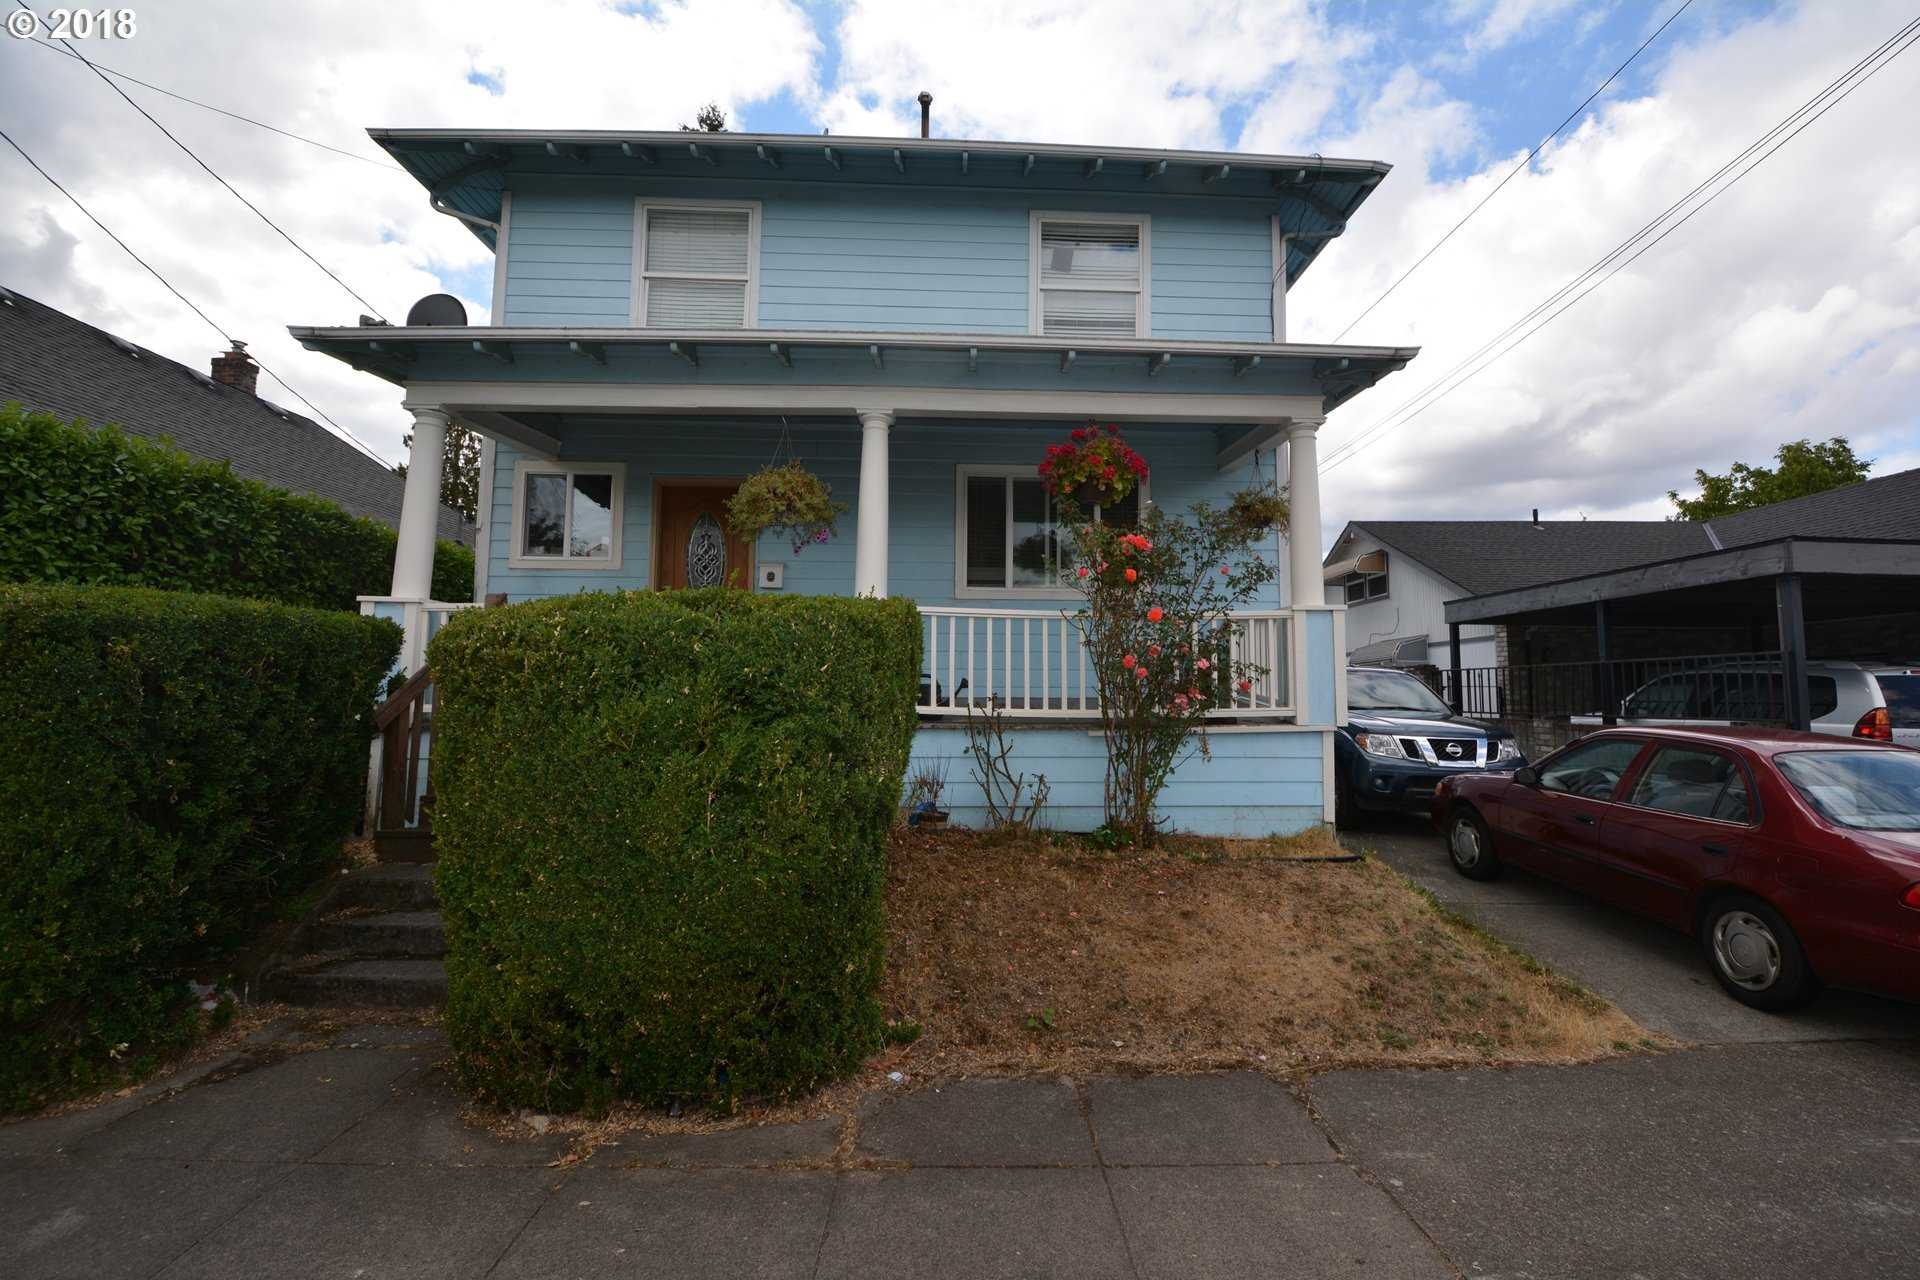 $369,900 - 8Br/3Ba -  for Sale in Portland